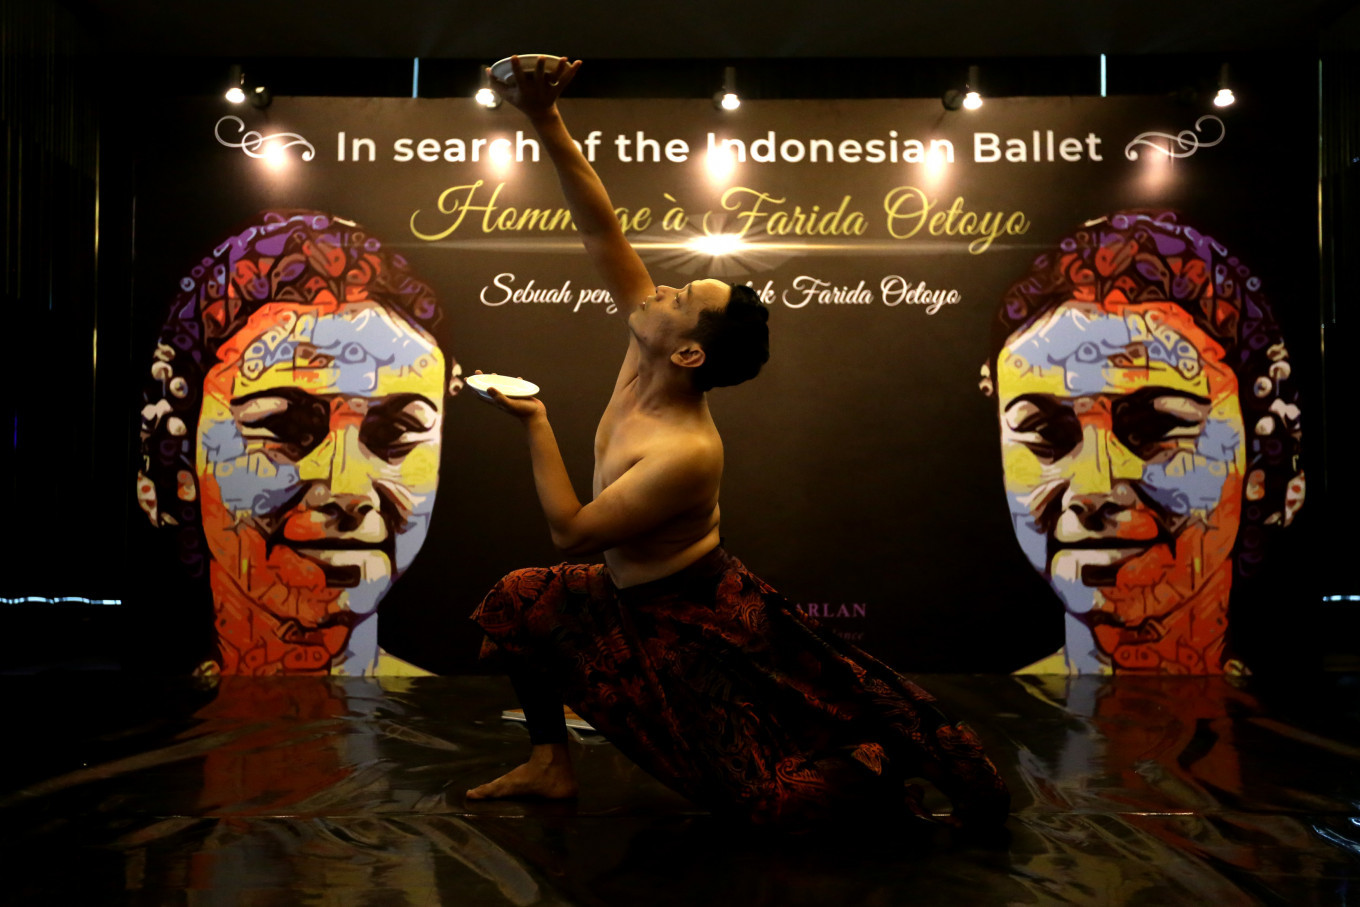 The Indonesian ballet of Farida Oetoyo